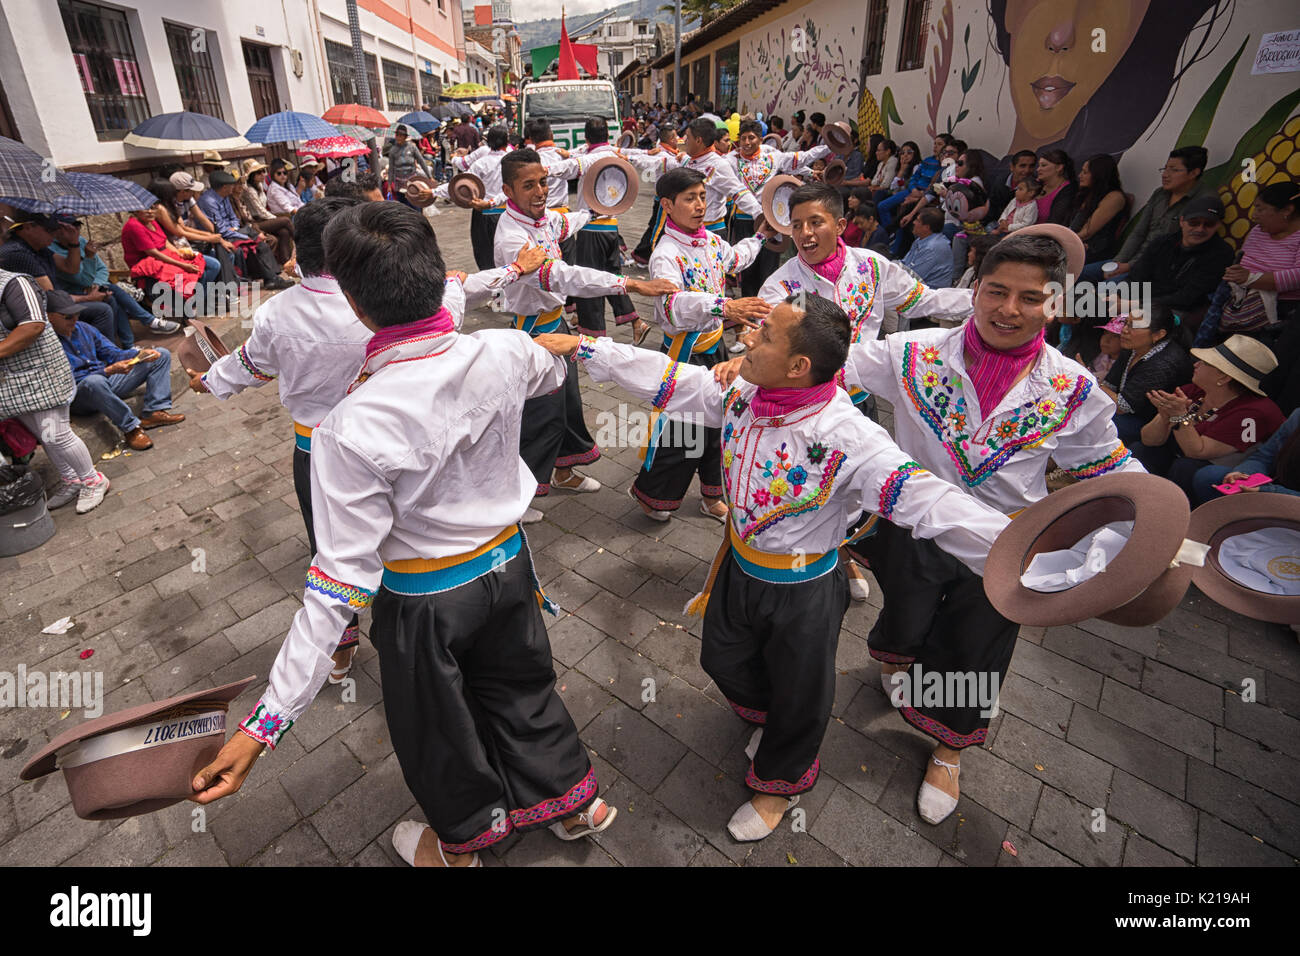 June 17, 2017 Pujili, Ecuador: male dancers in traditional clothing performing on the street during Corpus Christi parade - Stock Image